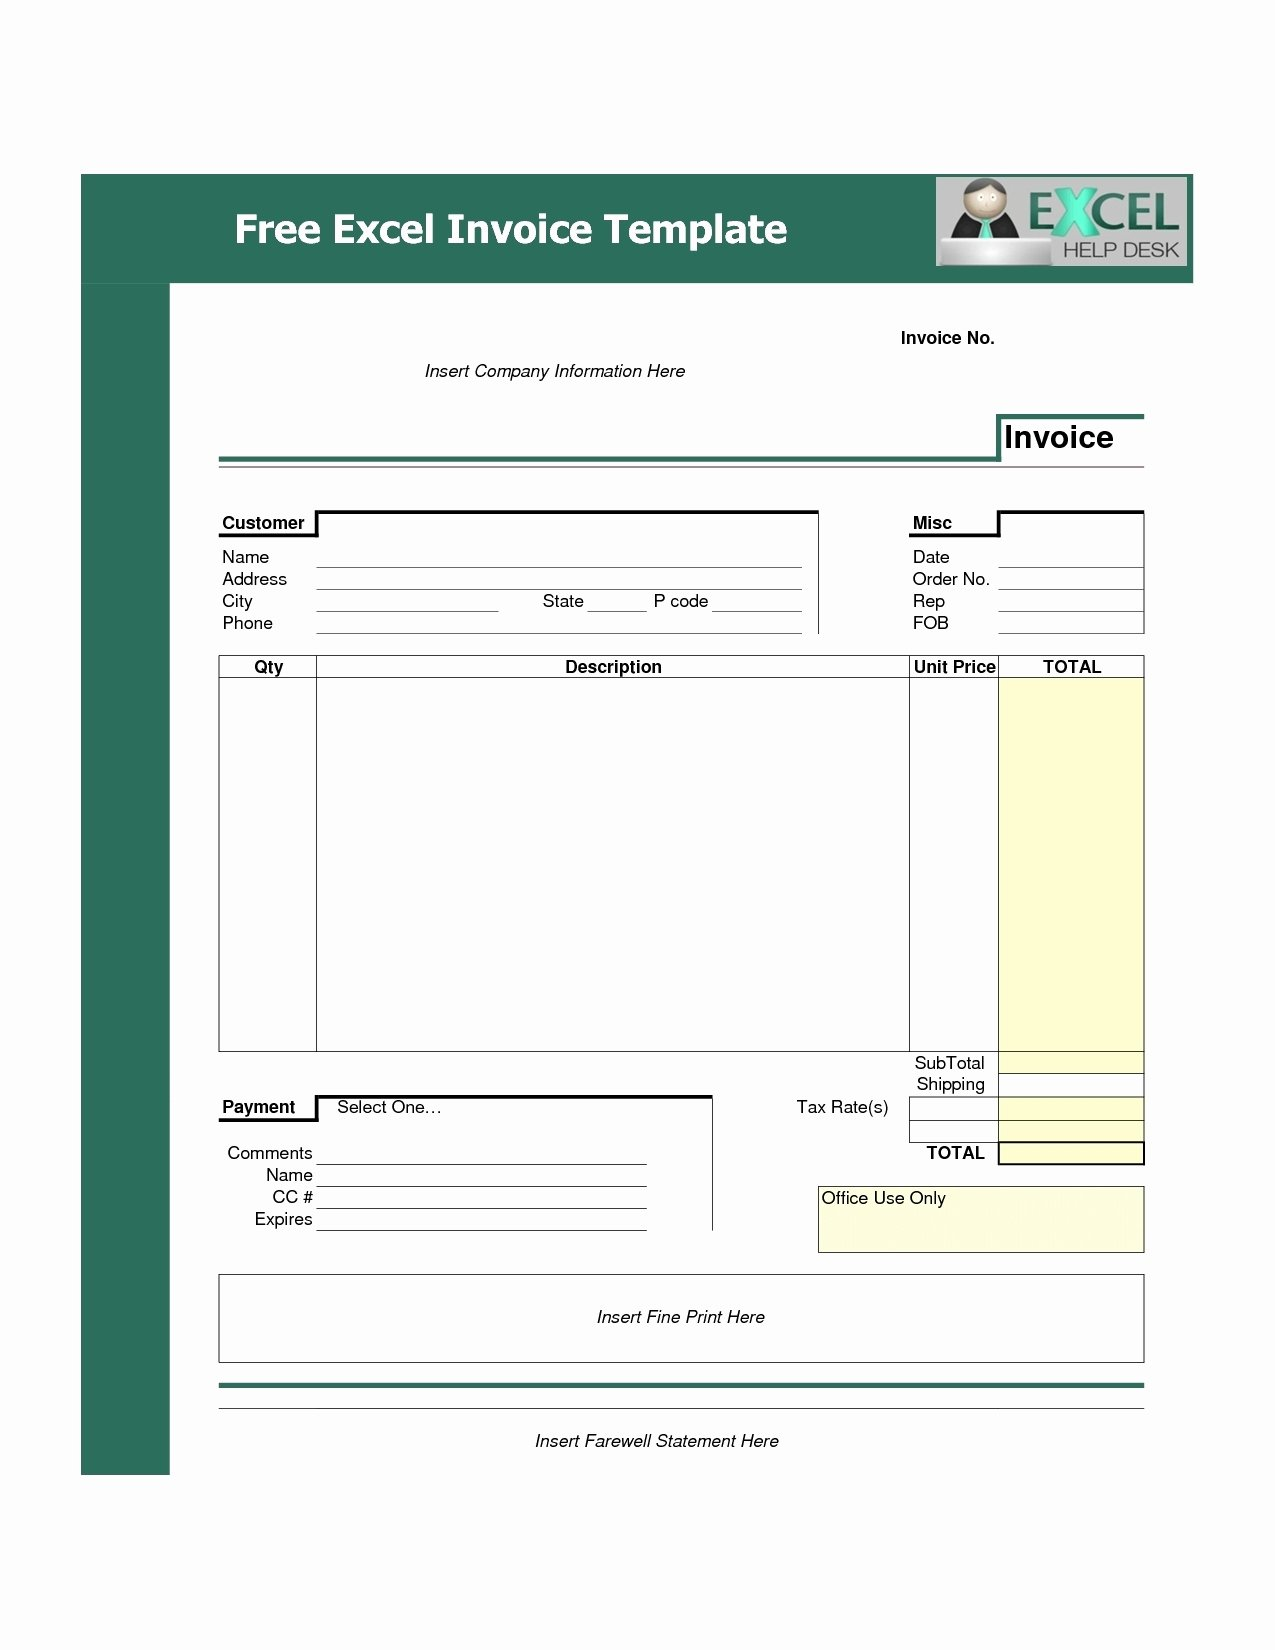 Free Billing Invoice Template Awesome Invoice Template Free Download Excel Invoice Template Ideas